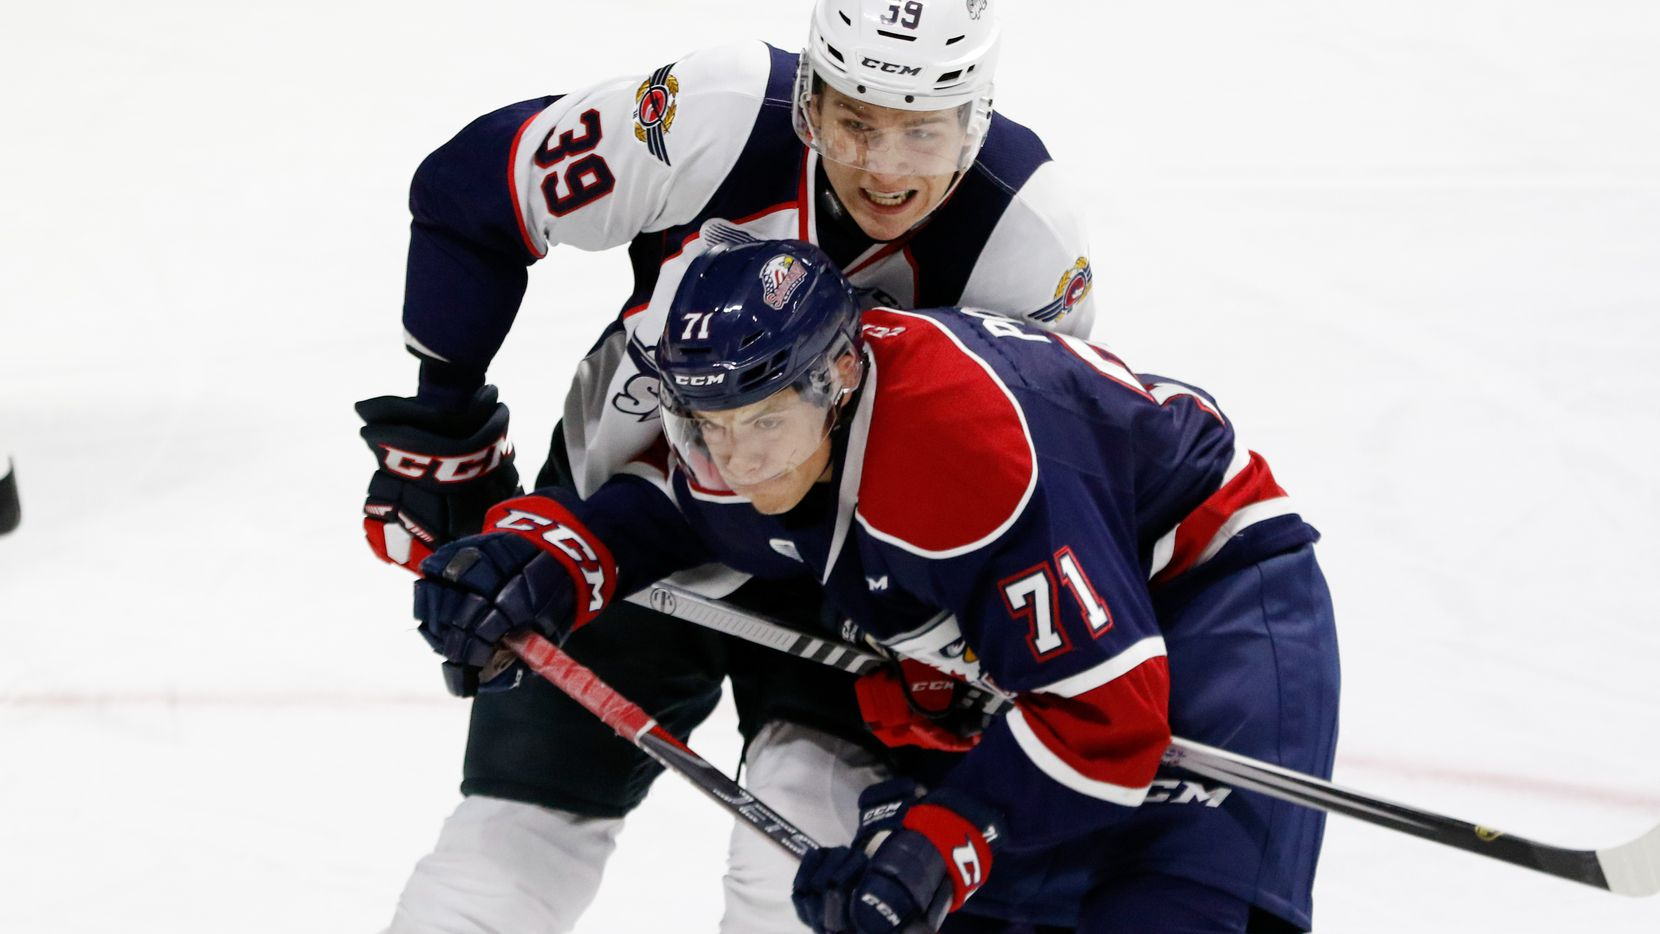 WINDSOR, ON - SEPTEMBER 27: Forward Nicholas Porco #71 of the Saginaw Spirit battles against forward Curtis Douglas #39 of the Windsor Spitfires on September 27, 2018 at the WFCU Centre in Windsor, Ontario, Canada. (Photo by Dennis Pajot/Getty Images)